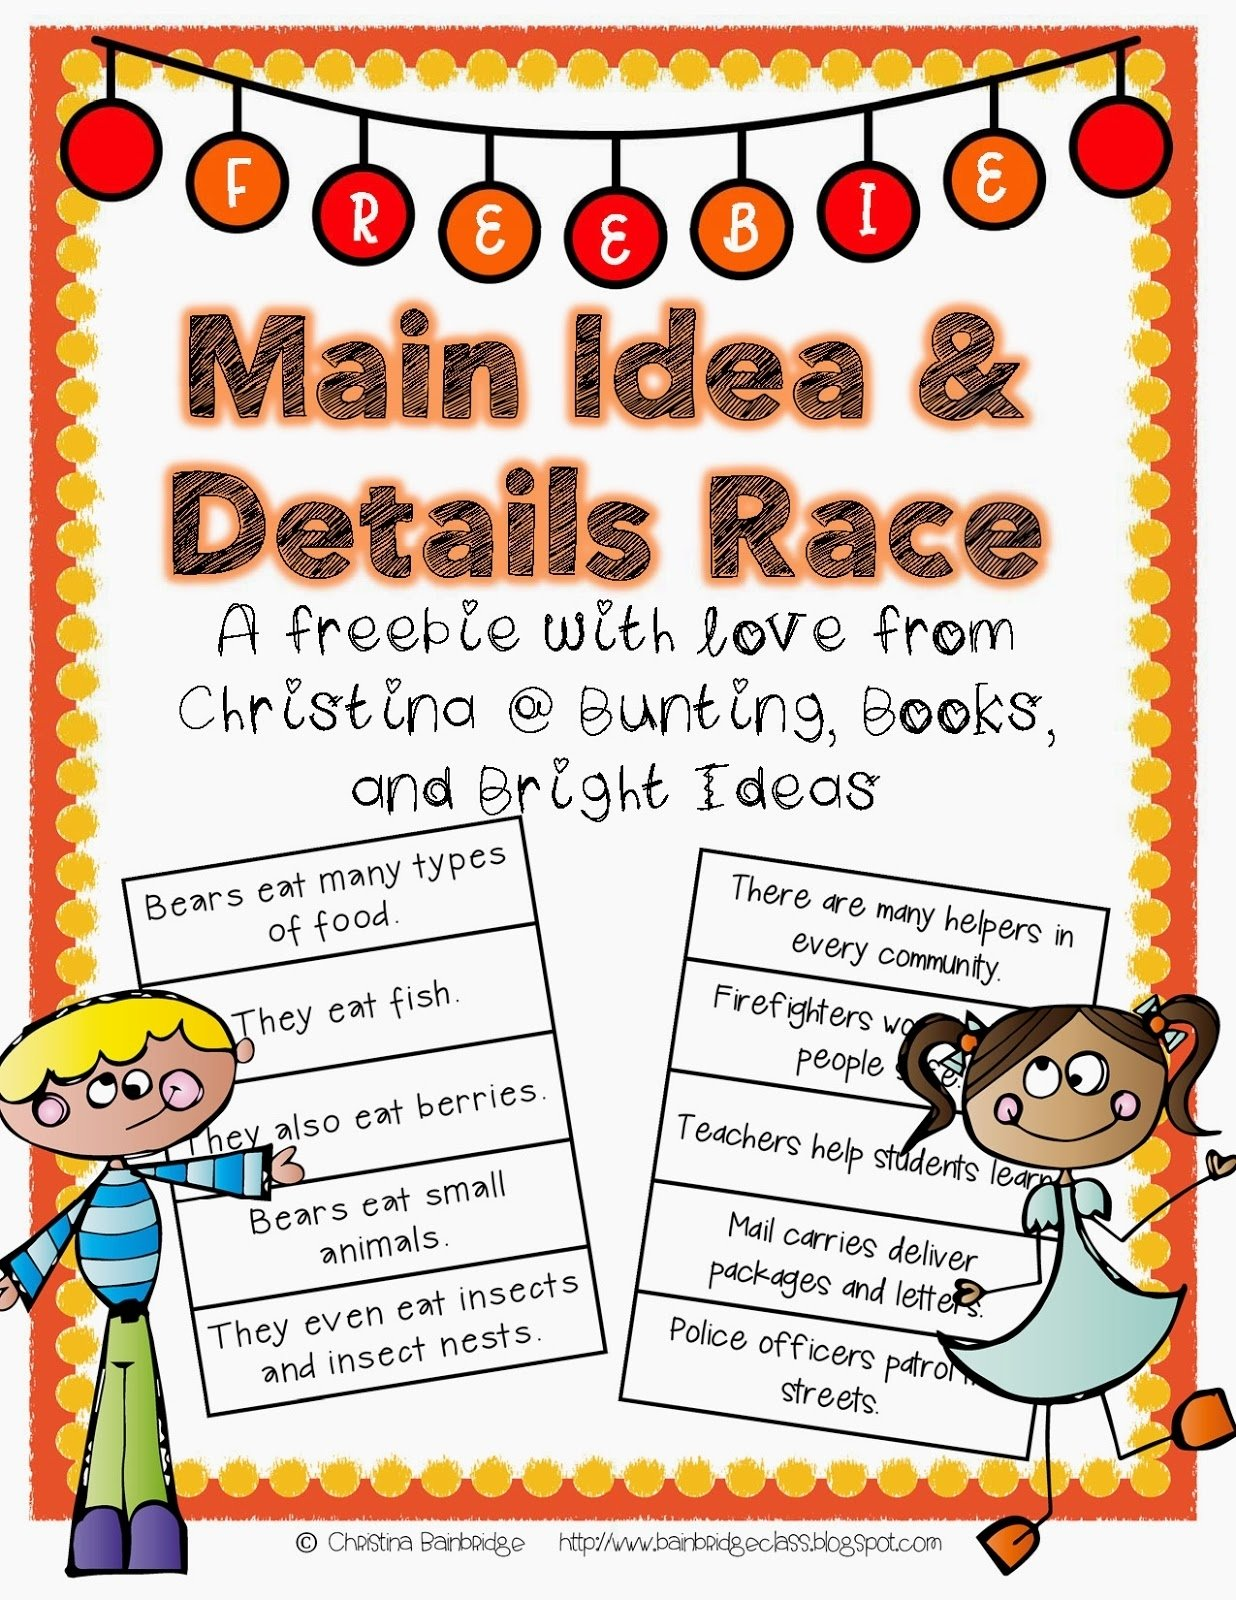 10 Lovable Main Idea And Details Activities main idea and details freebiemain idea projects to try 2020